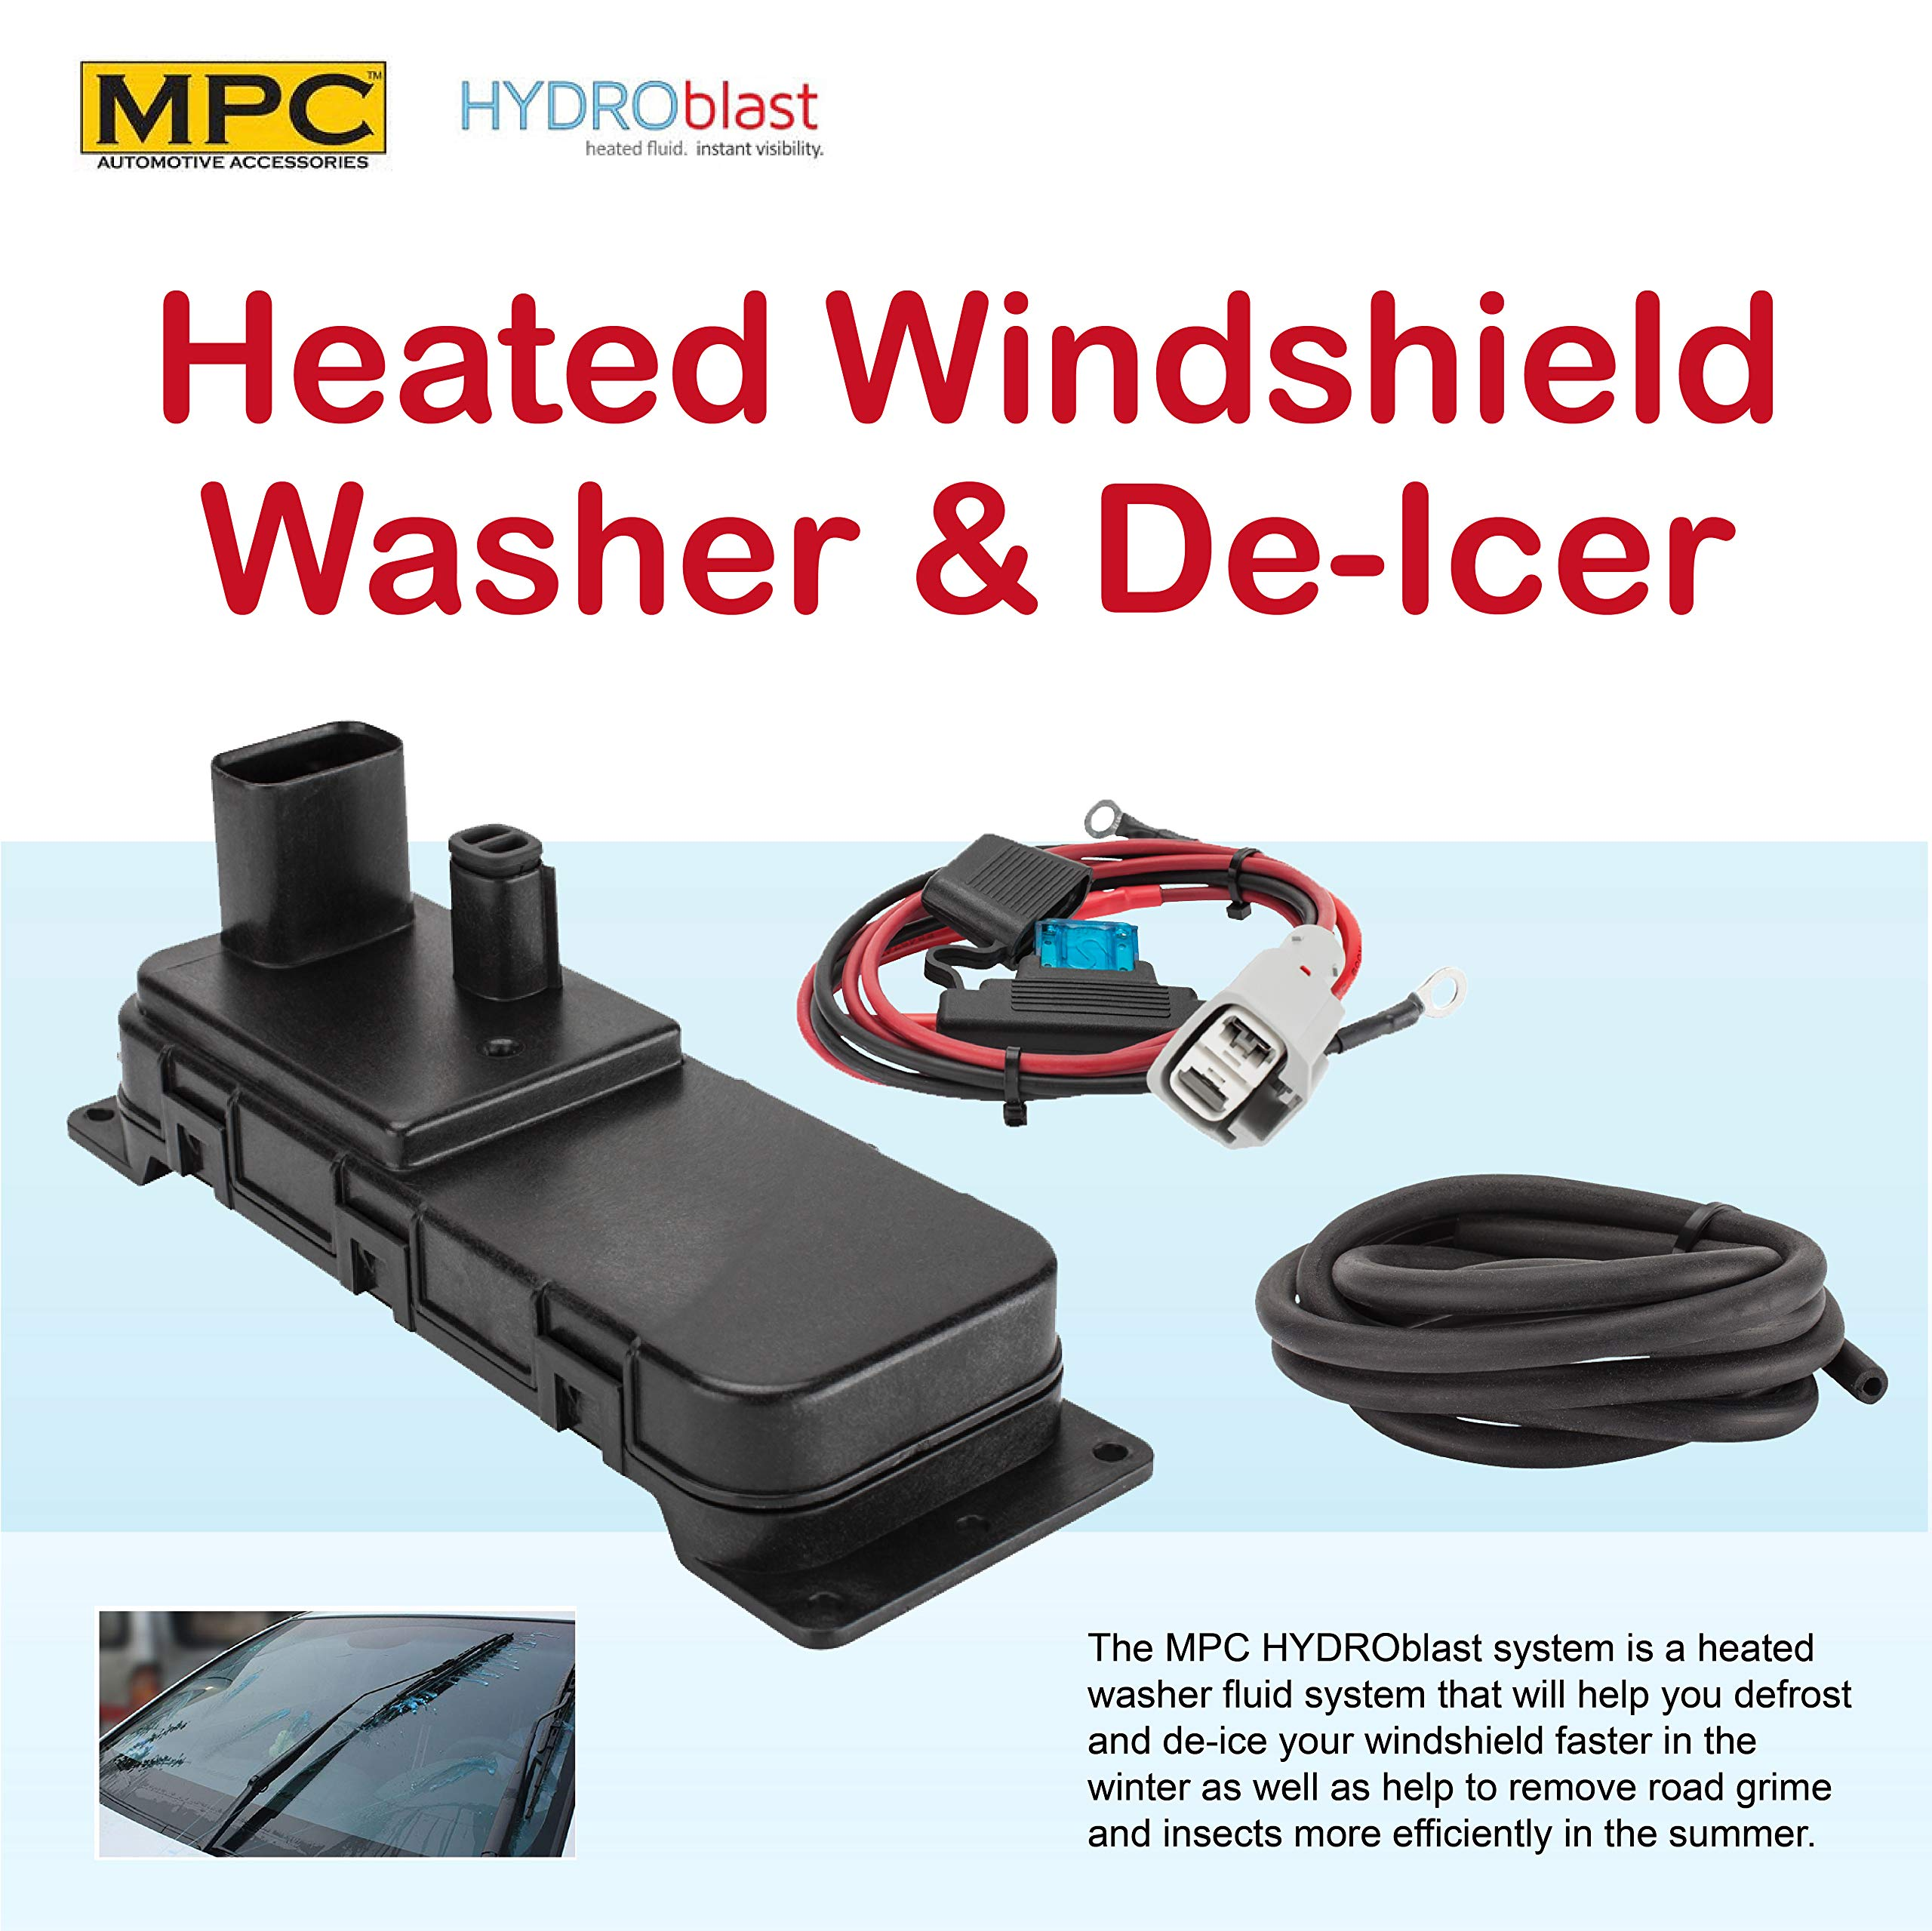 MPC Heats Your Windshield Washer Fluid Up to 140 Degrees - No More Scraping Ice Or Bugs Off Windshield - Complete System - Universal Fit - Easy to Install by MPC